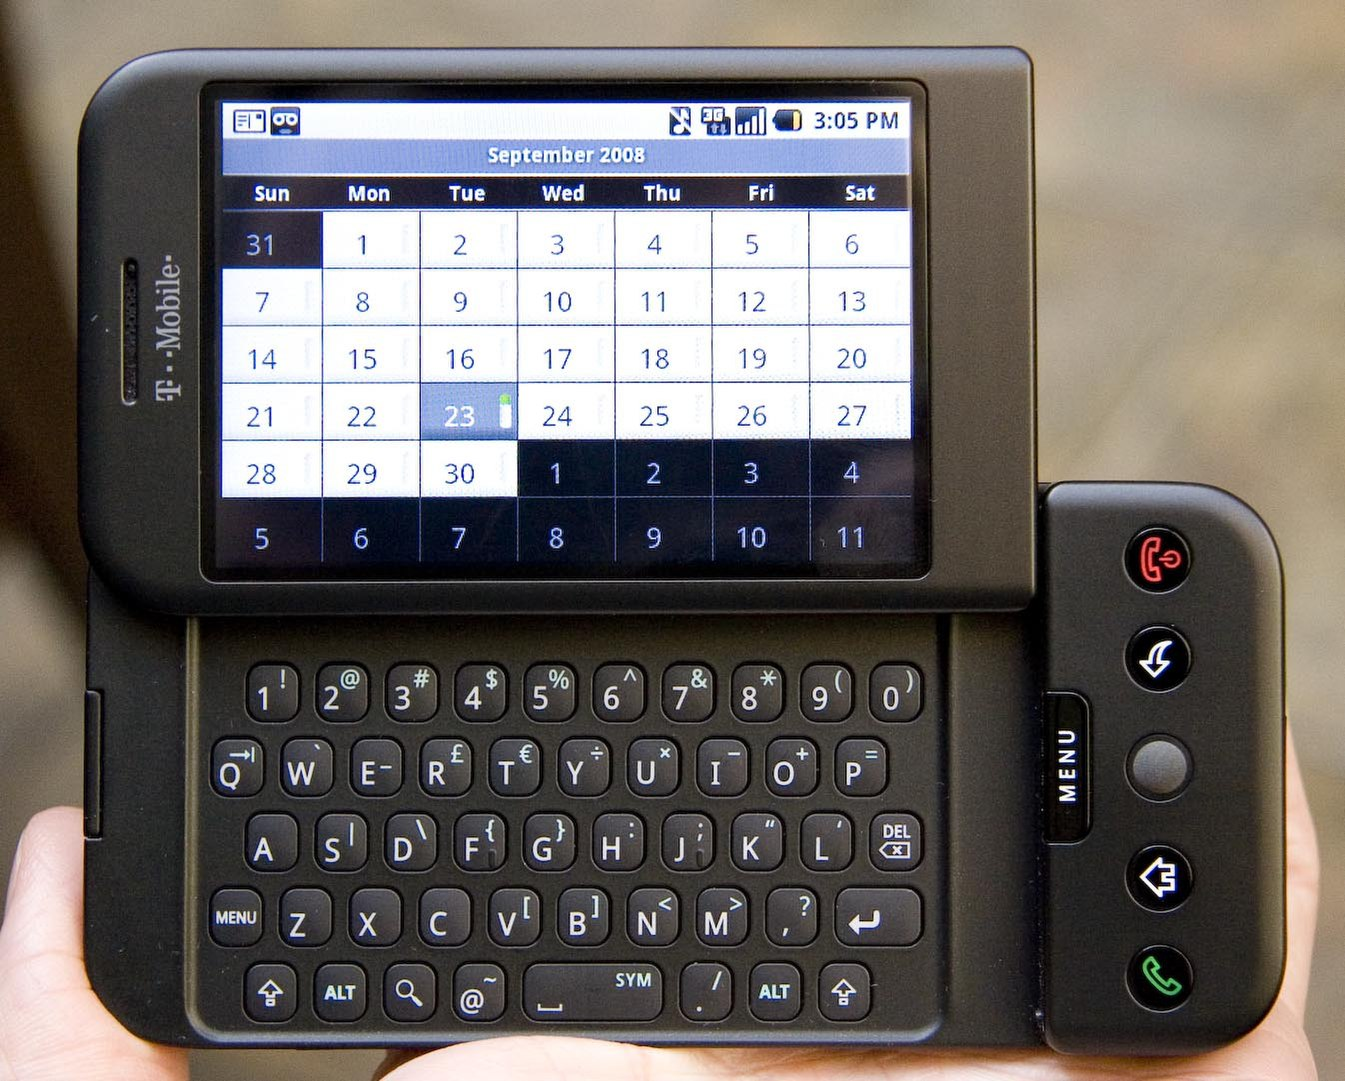 HTC Dream - The complete information and online sale with